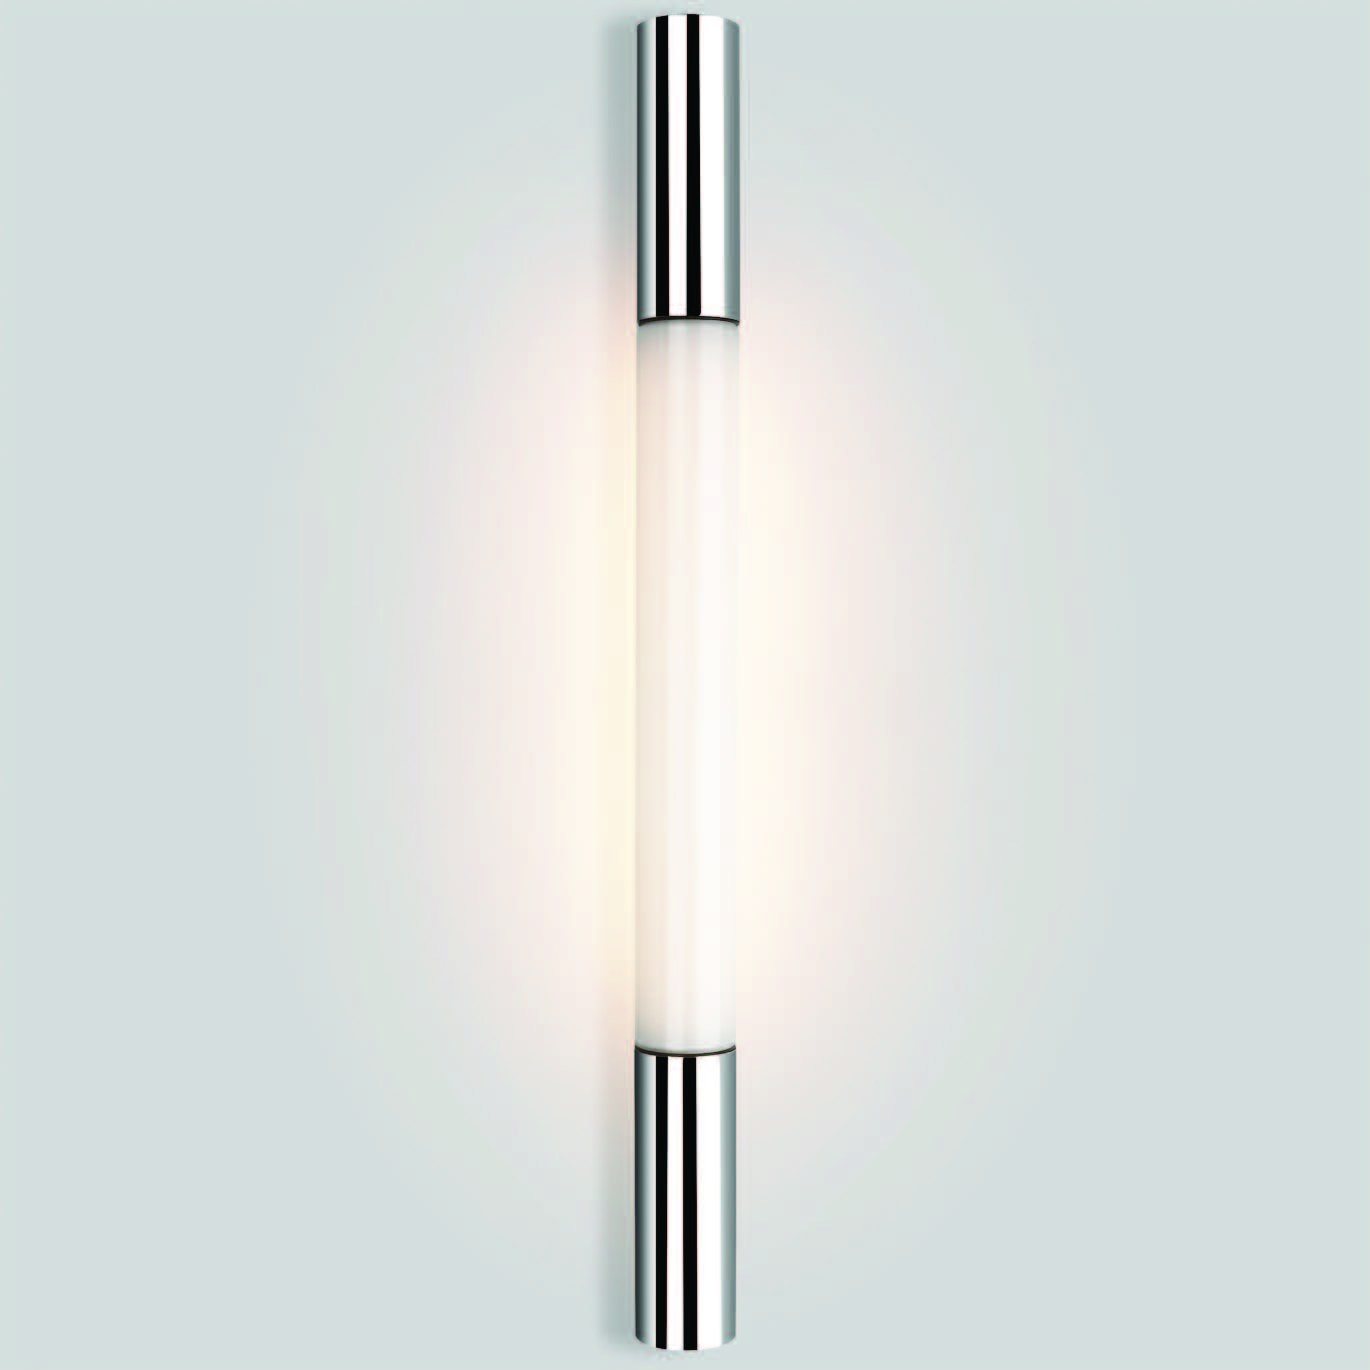 Ip54 Waterproof 36w Exterior Wall Lamps Compact Fluorescent Lamp Outdoor Wall Light With Good Design Buy Outdoor Wall Light Ip54 Waterproof 36w Fluorescent Lamp Outdoor Lighting Wall Sconce 36w Special Design Stainless